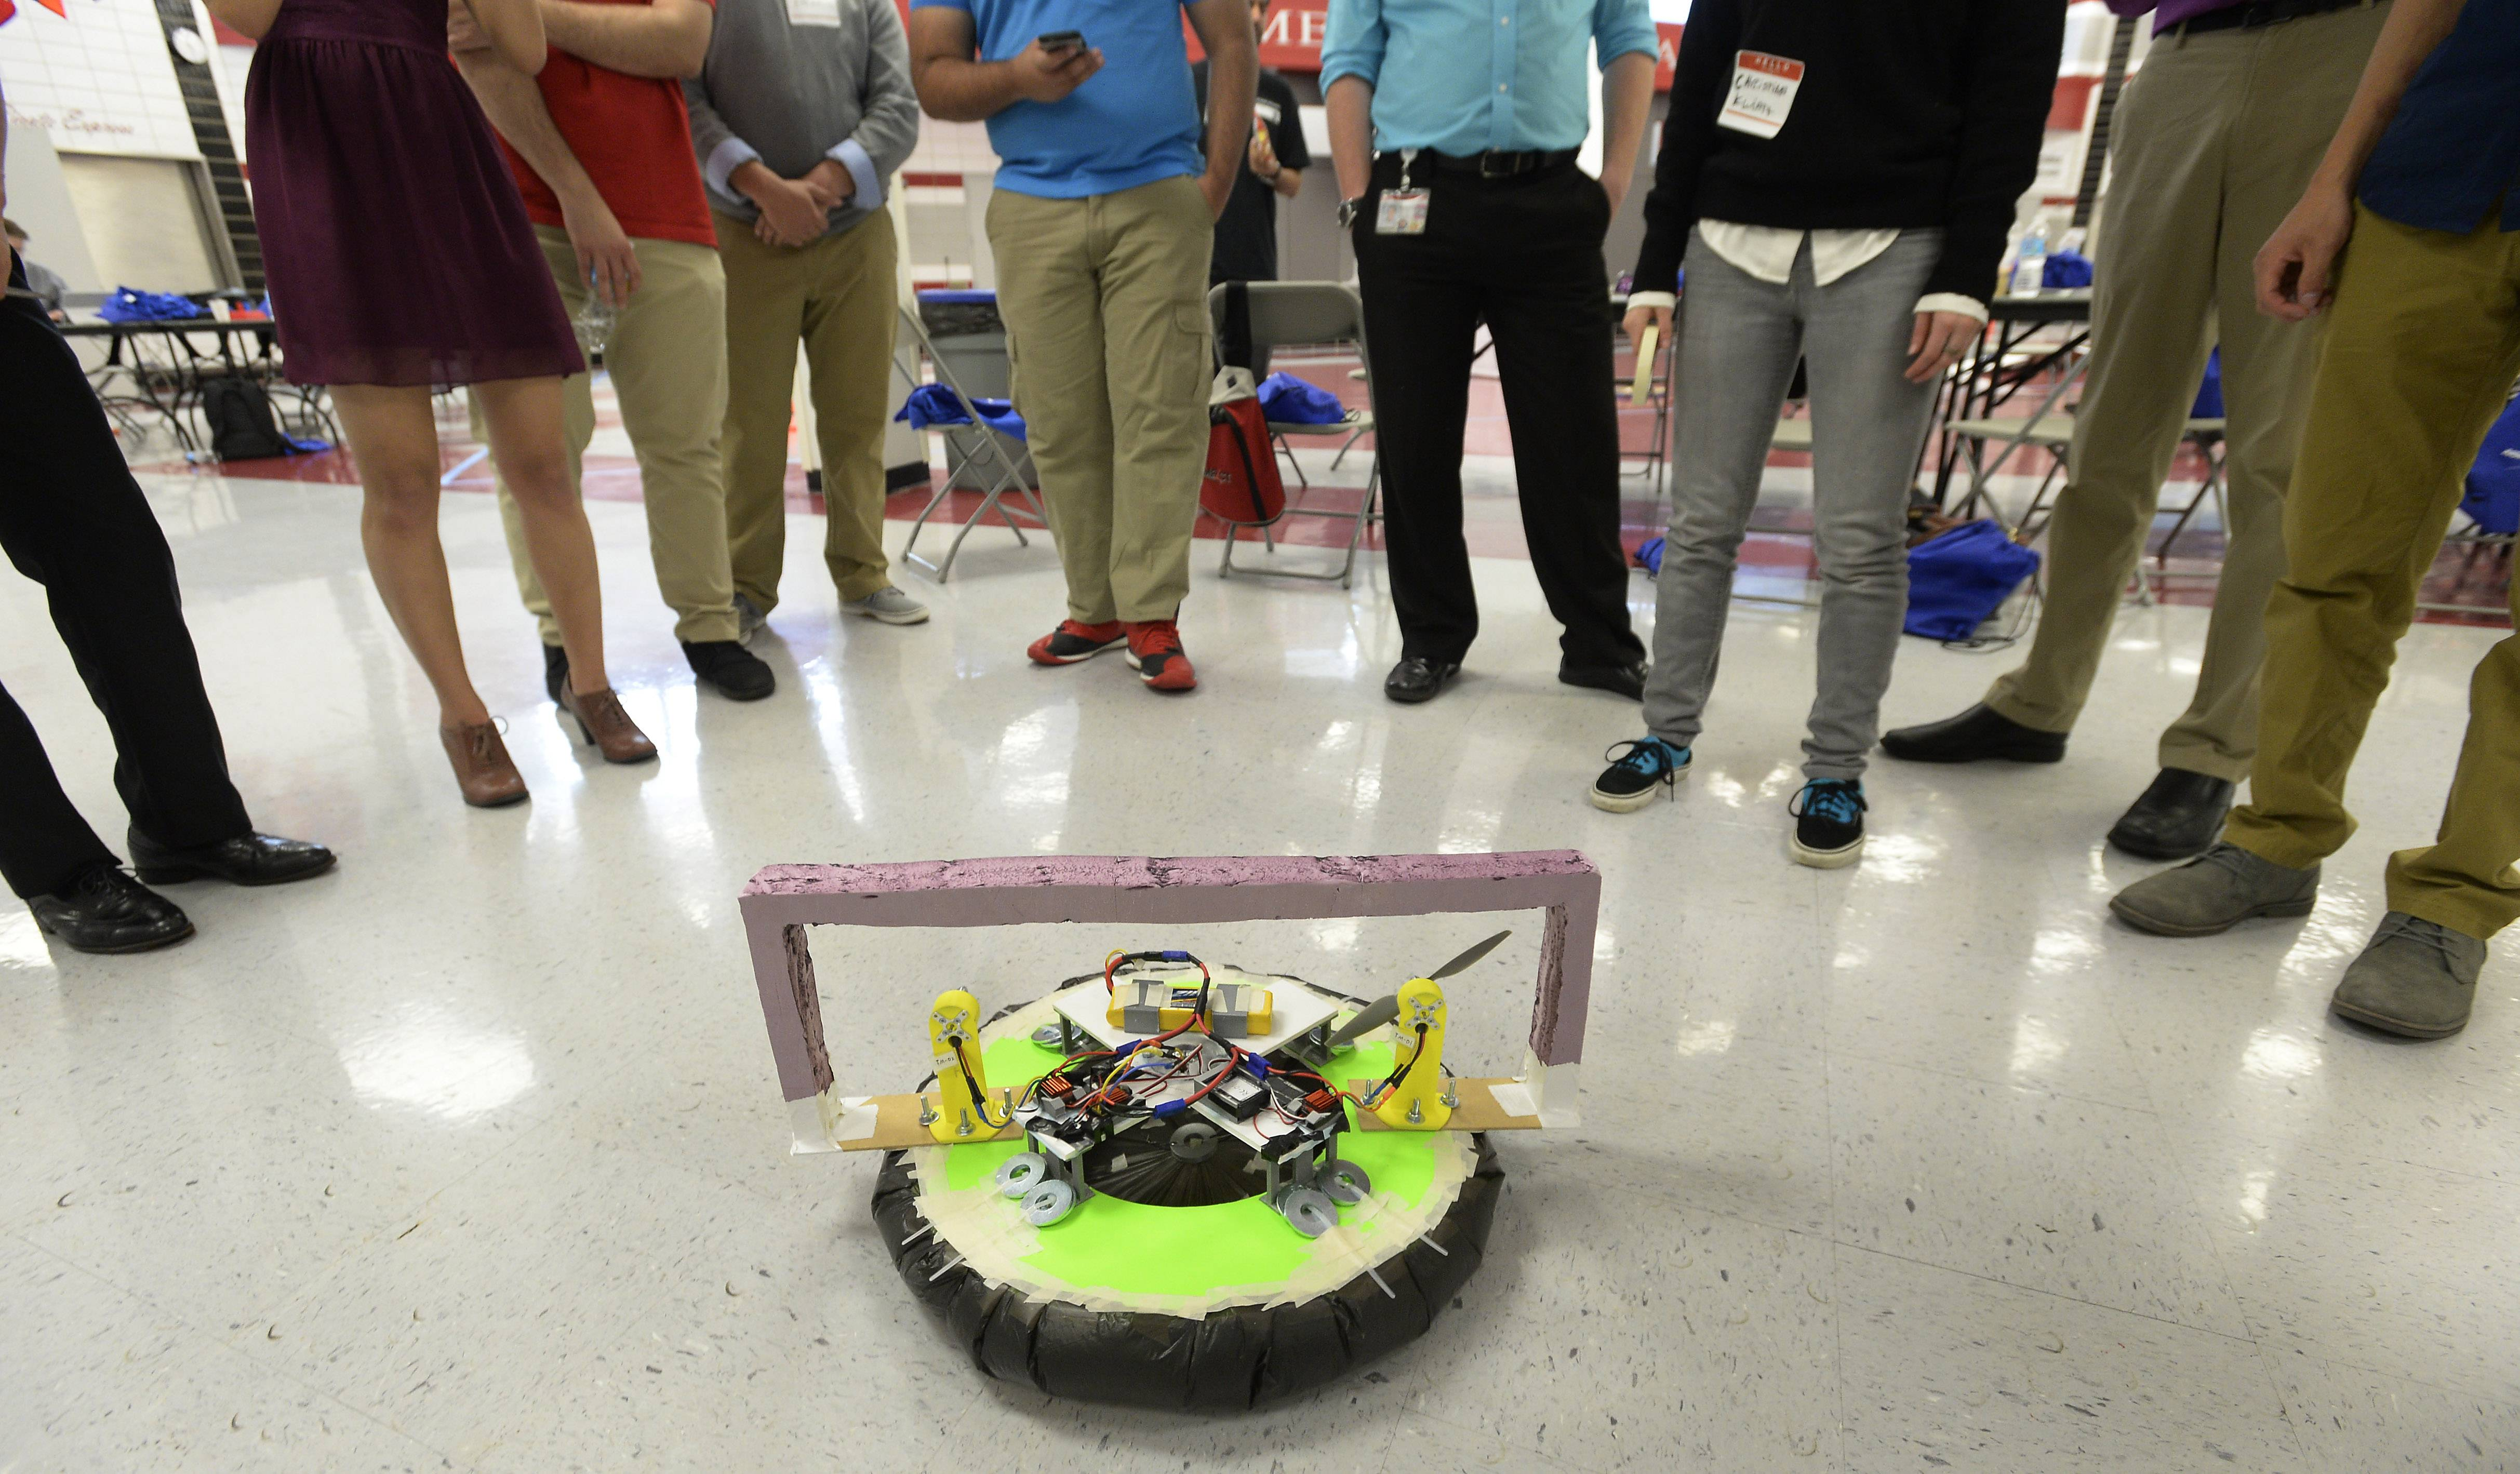 A hovercraft built by Palatine High School computer integrated manufacturing students is ready to compete Saturday at the 2016 High School Innovation Challenge sponsored by Northrop Grumman.